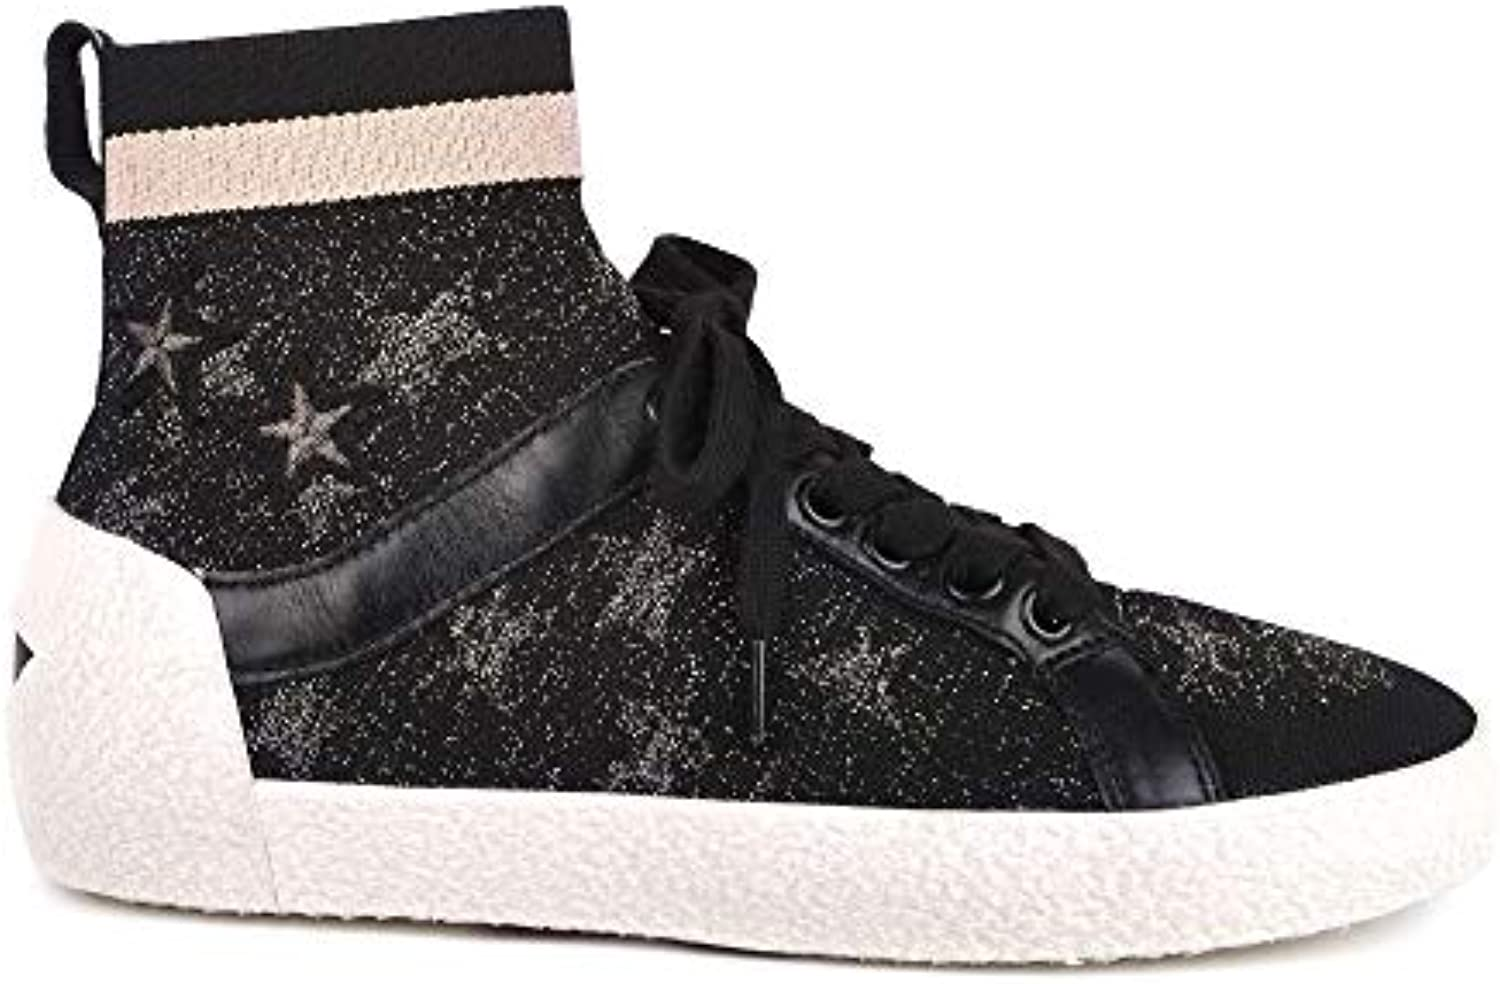 Ash Footwear Ninja Star nero Knit with Star Print Trainer | Materiali Di Prima Scelta